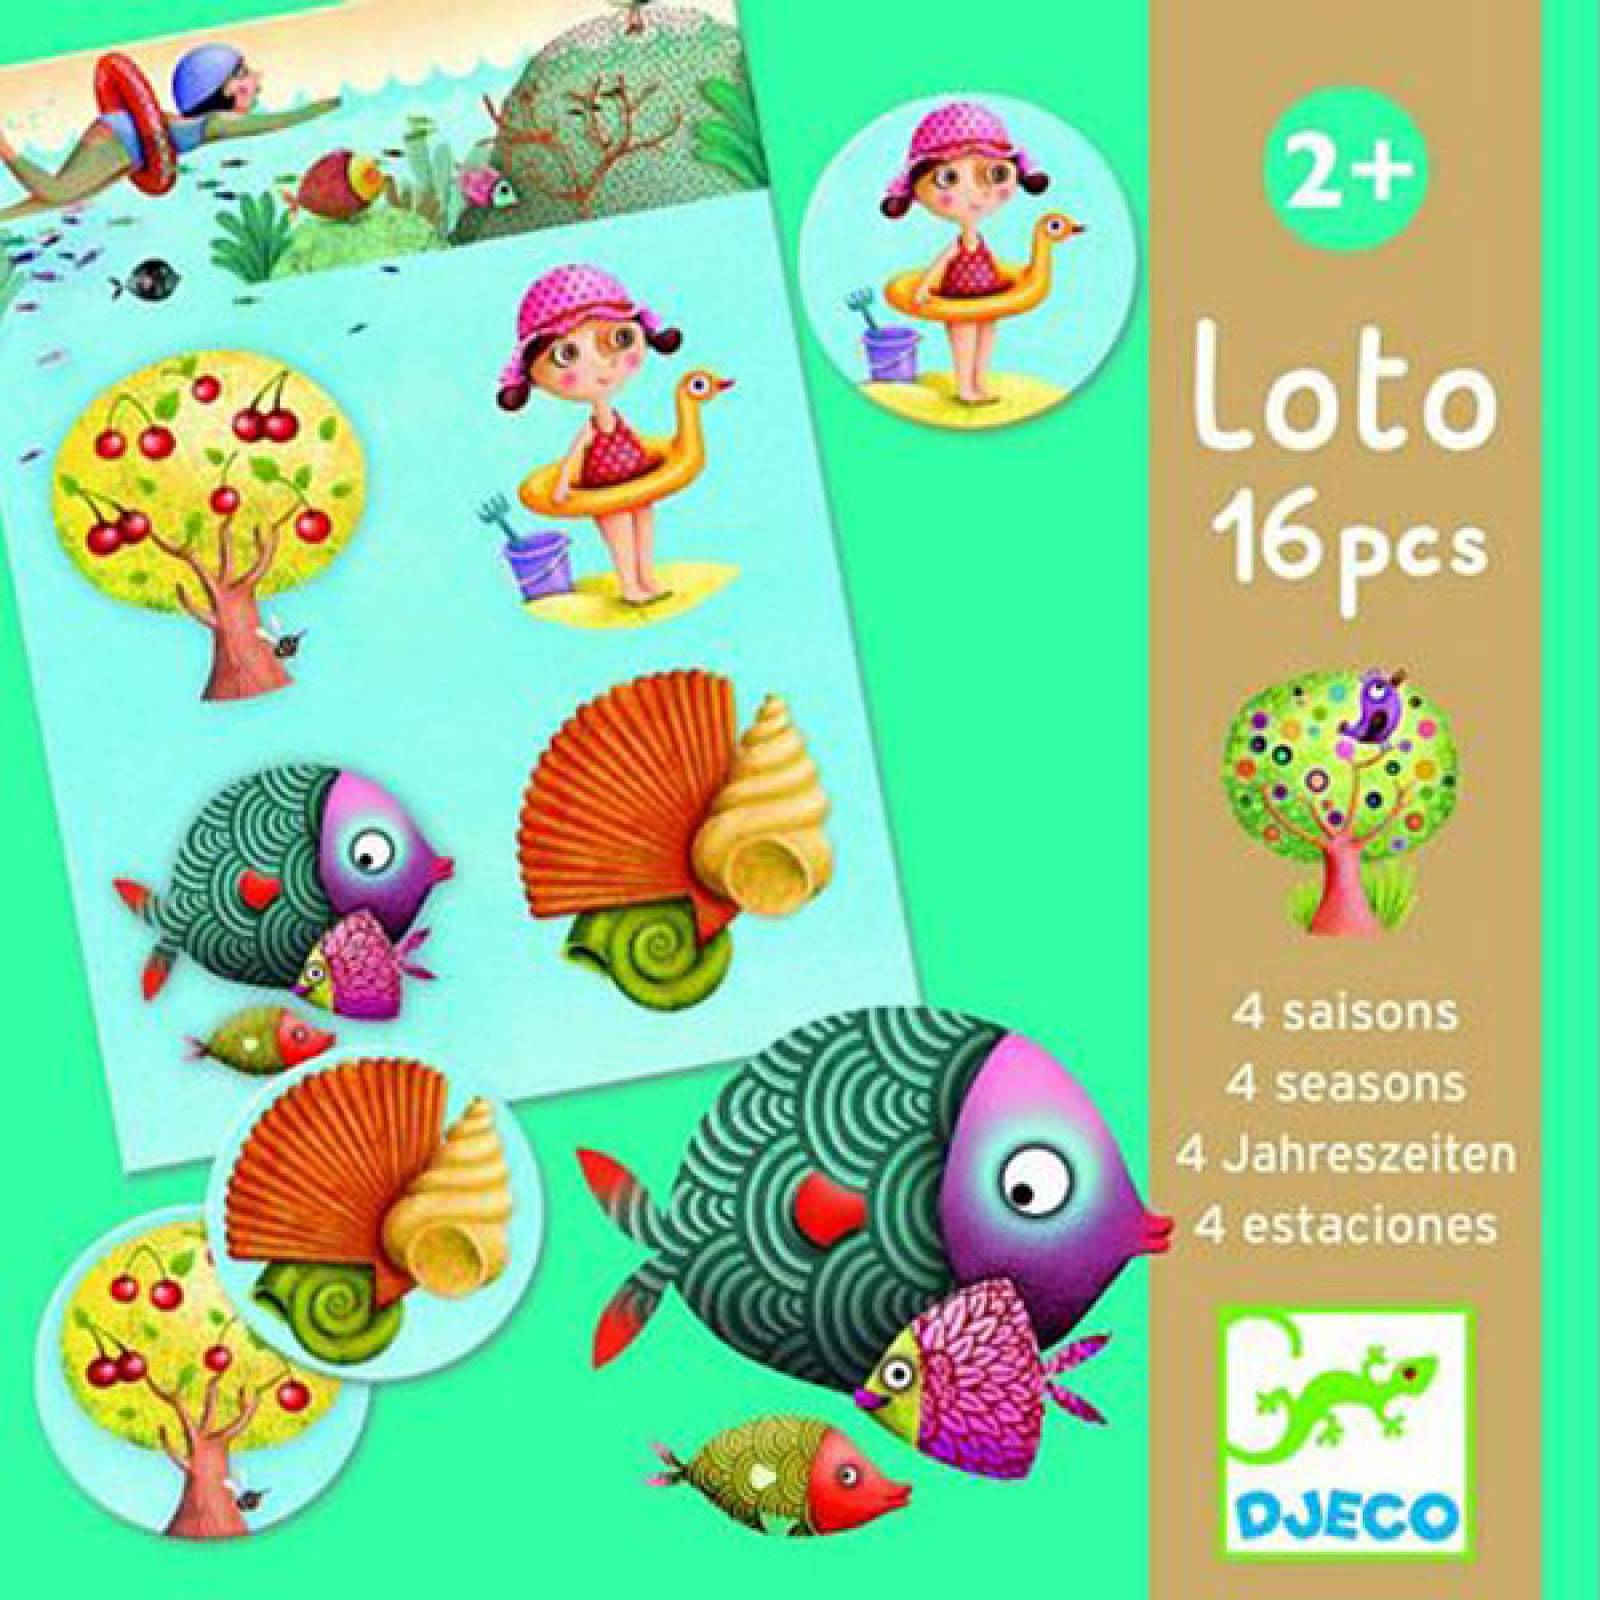 4 Seasons Loto Game 16pc By Djeco 2yr+ thumbnails